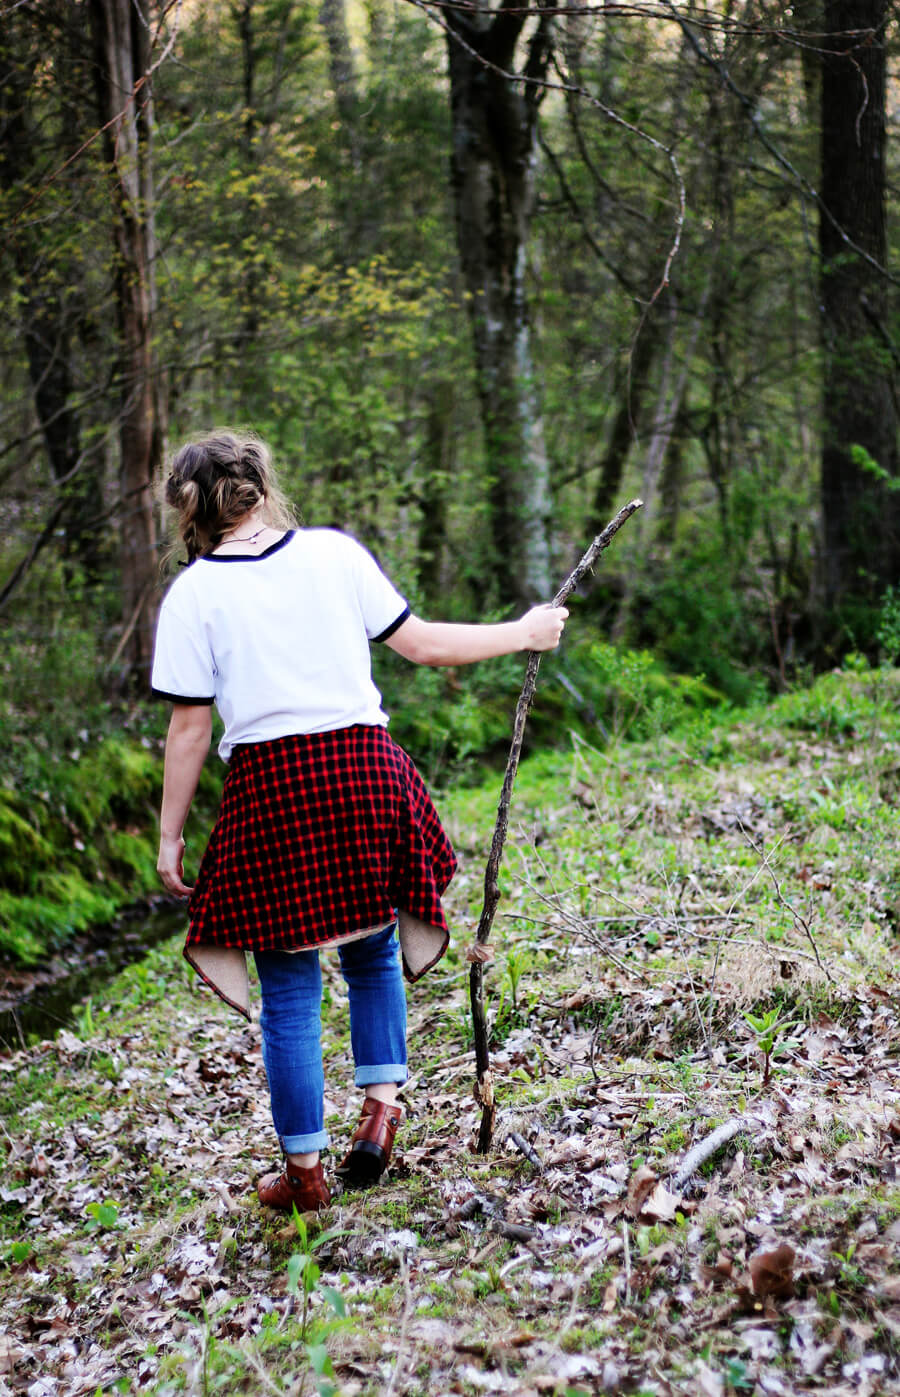 A picture of a young girl hiking through the woods